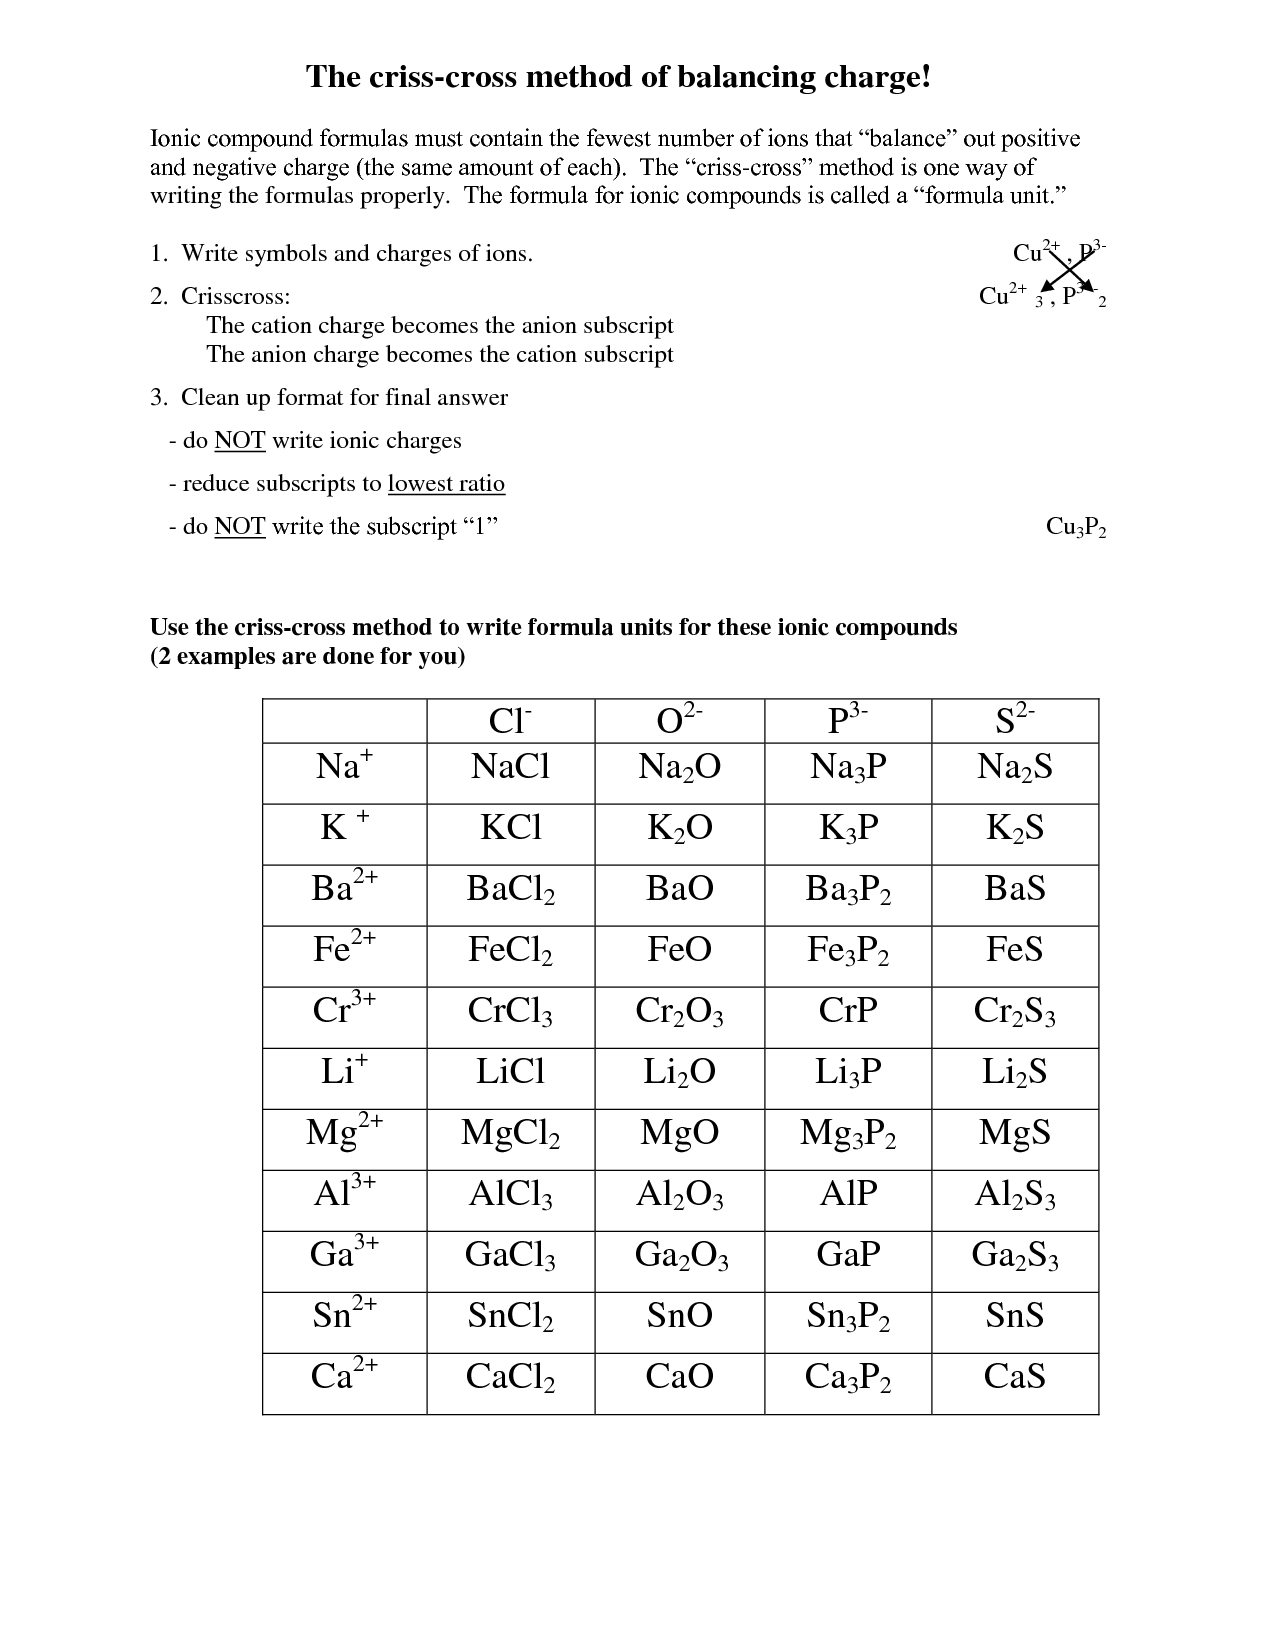 Homework Writing Ionic Compound Formulas